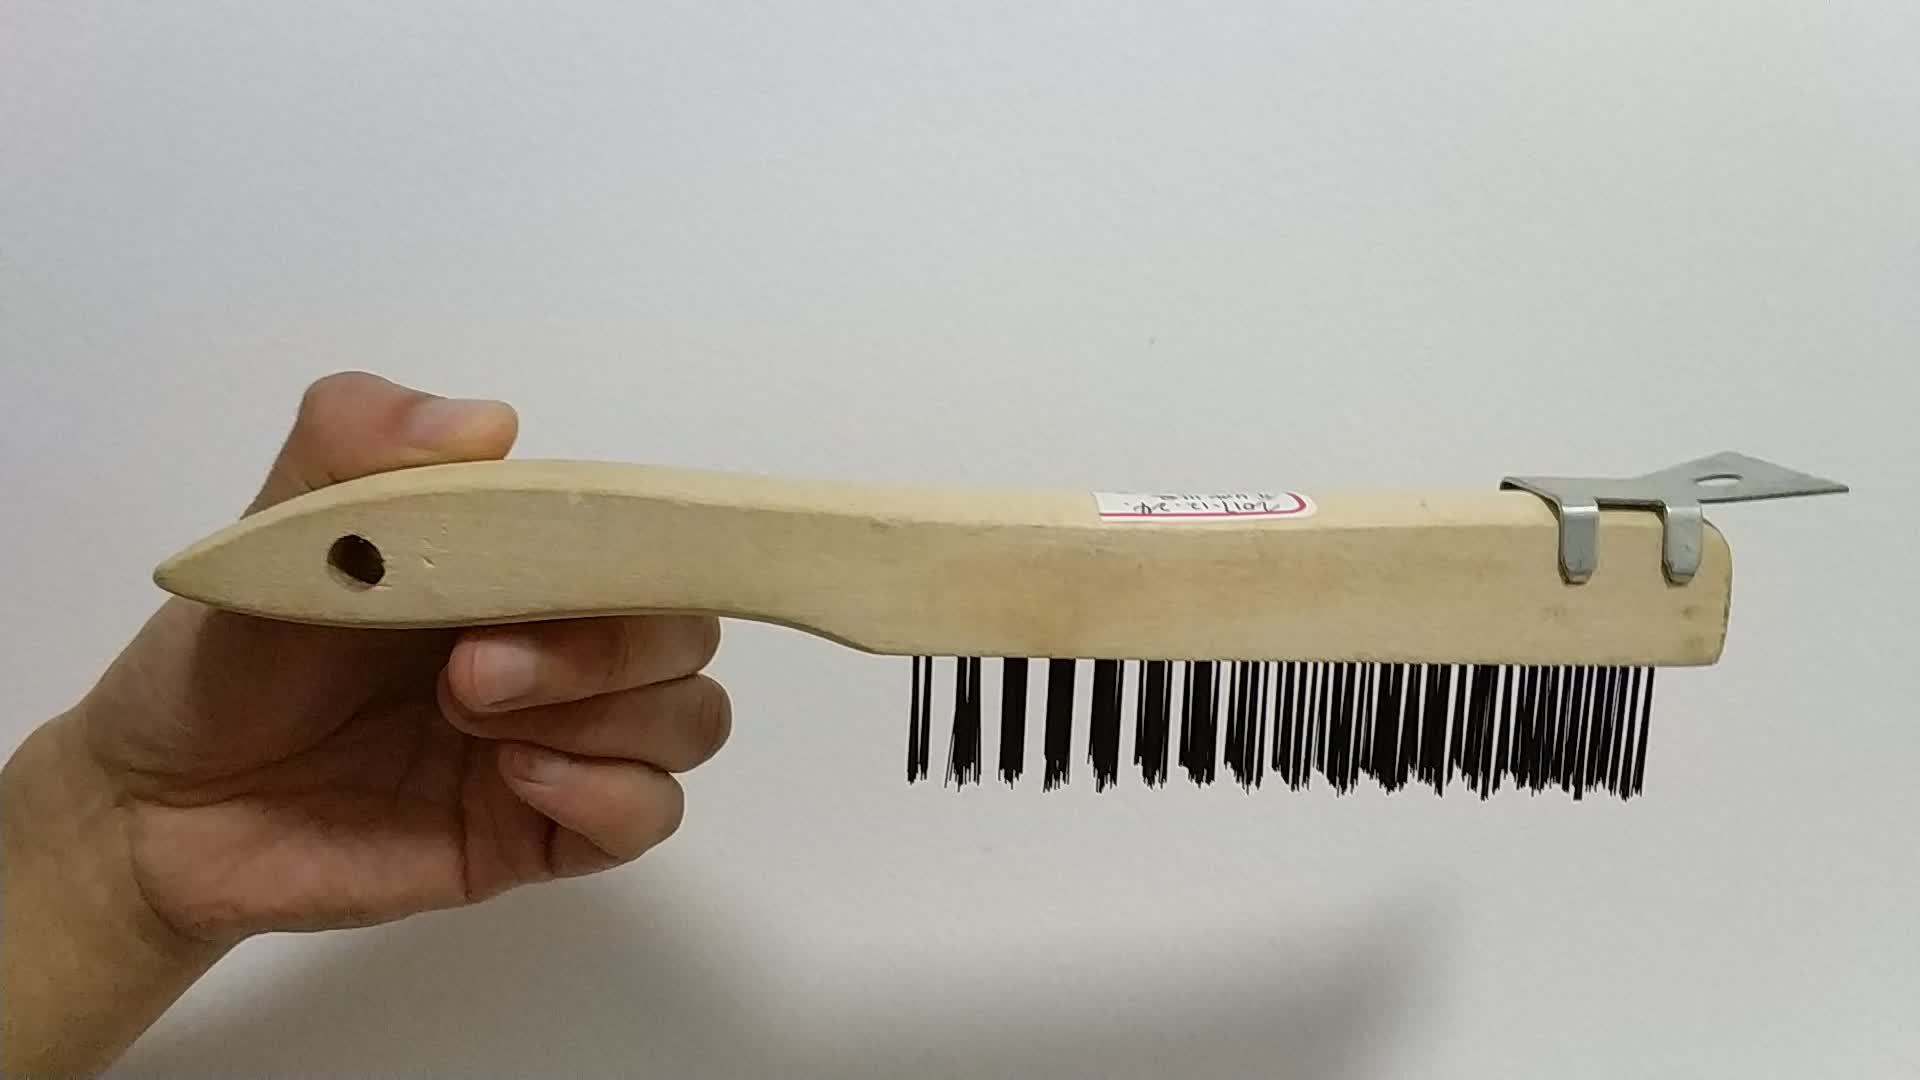 Wooden Handle Steel Wire Brush 4X16 Rows Stainless Steel Straight Black Wire Scratch Brush with Mini Scraper for Cleaning